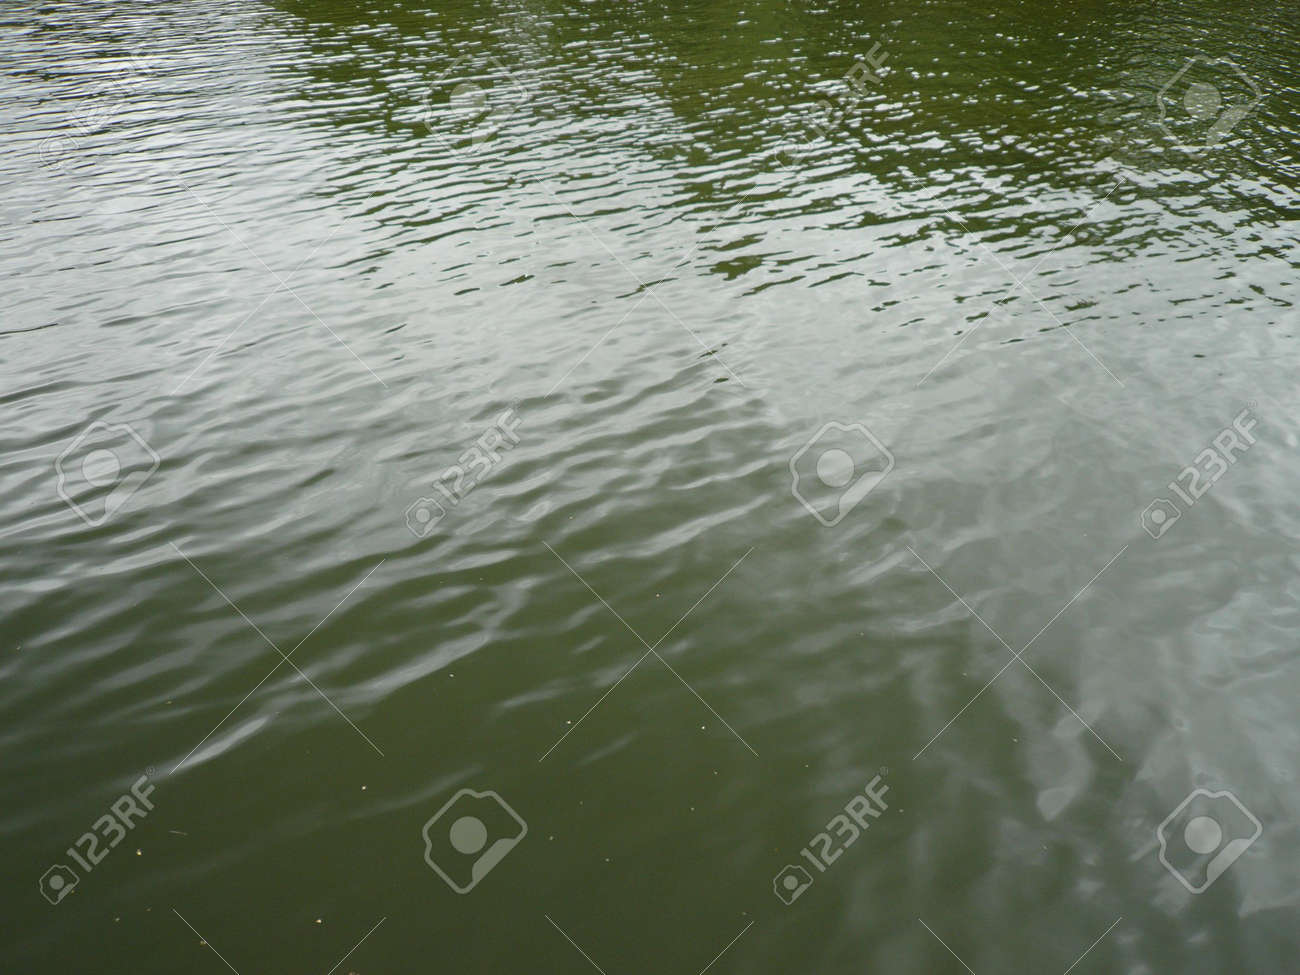 ripple on water at day Stock Photo - 3707397